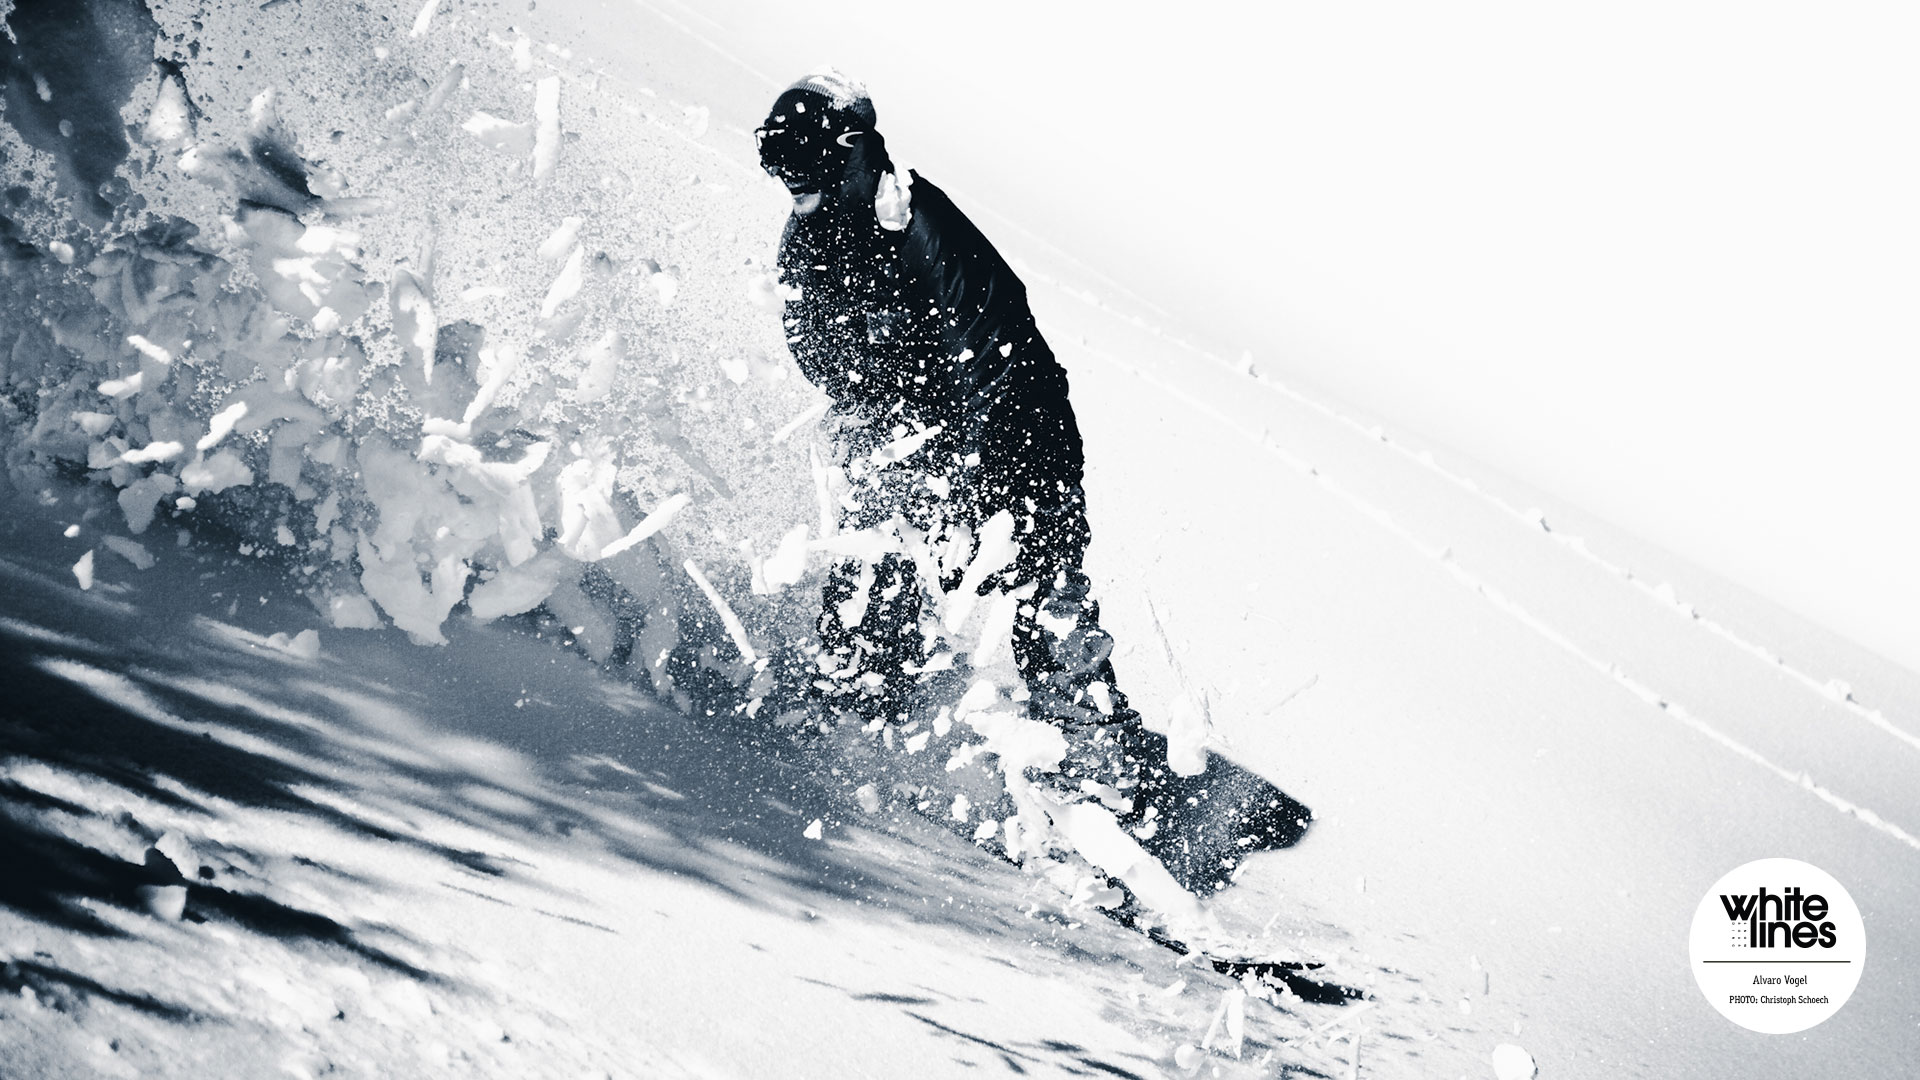 Snowboard Wallpaper - Alvaro Vogel cuts through the crust